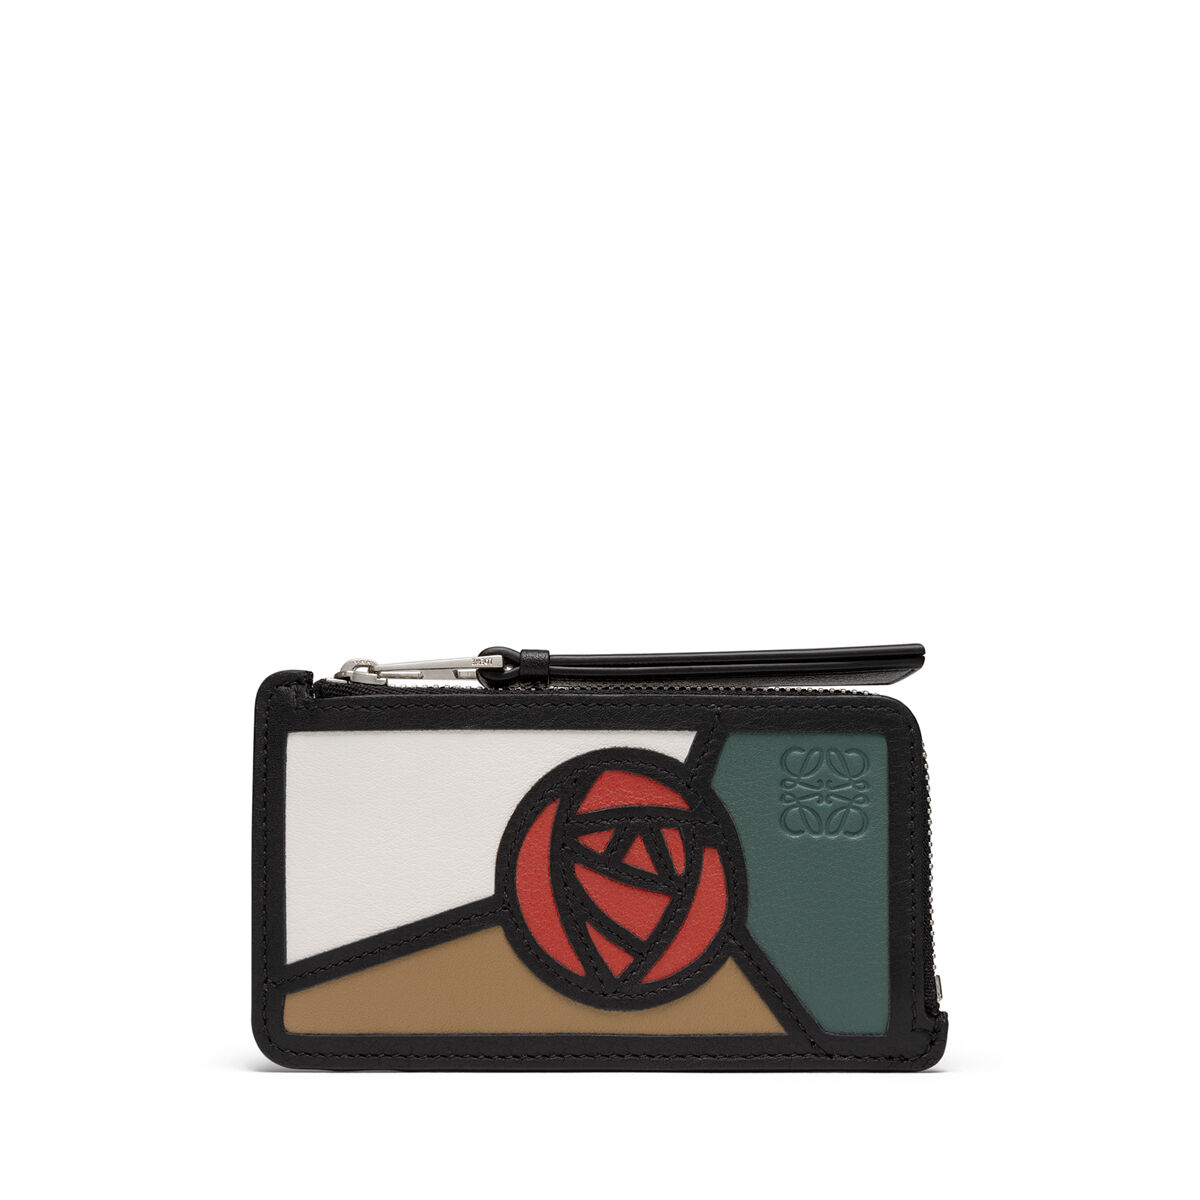 LOEWE Tarjetero C/Mon Puzzle Roses Mocca/Multicolor all